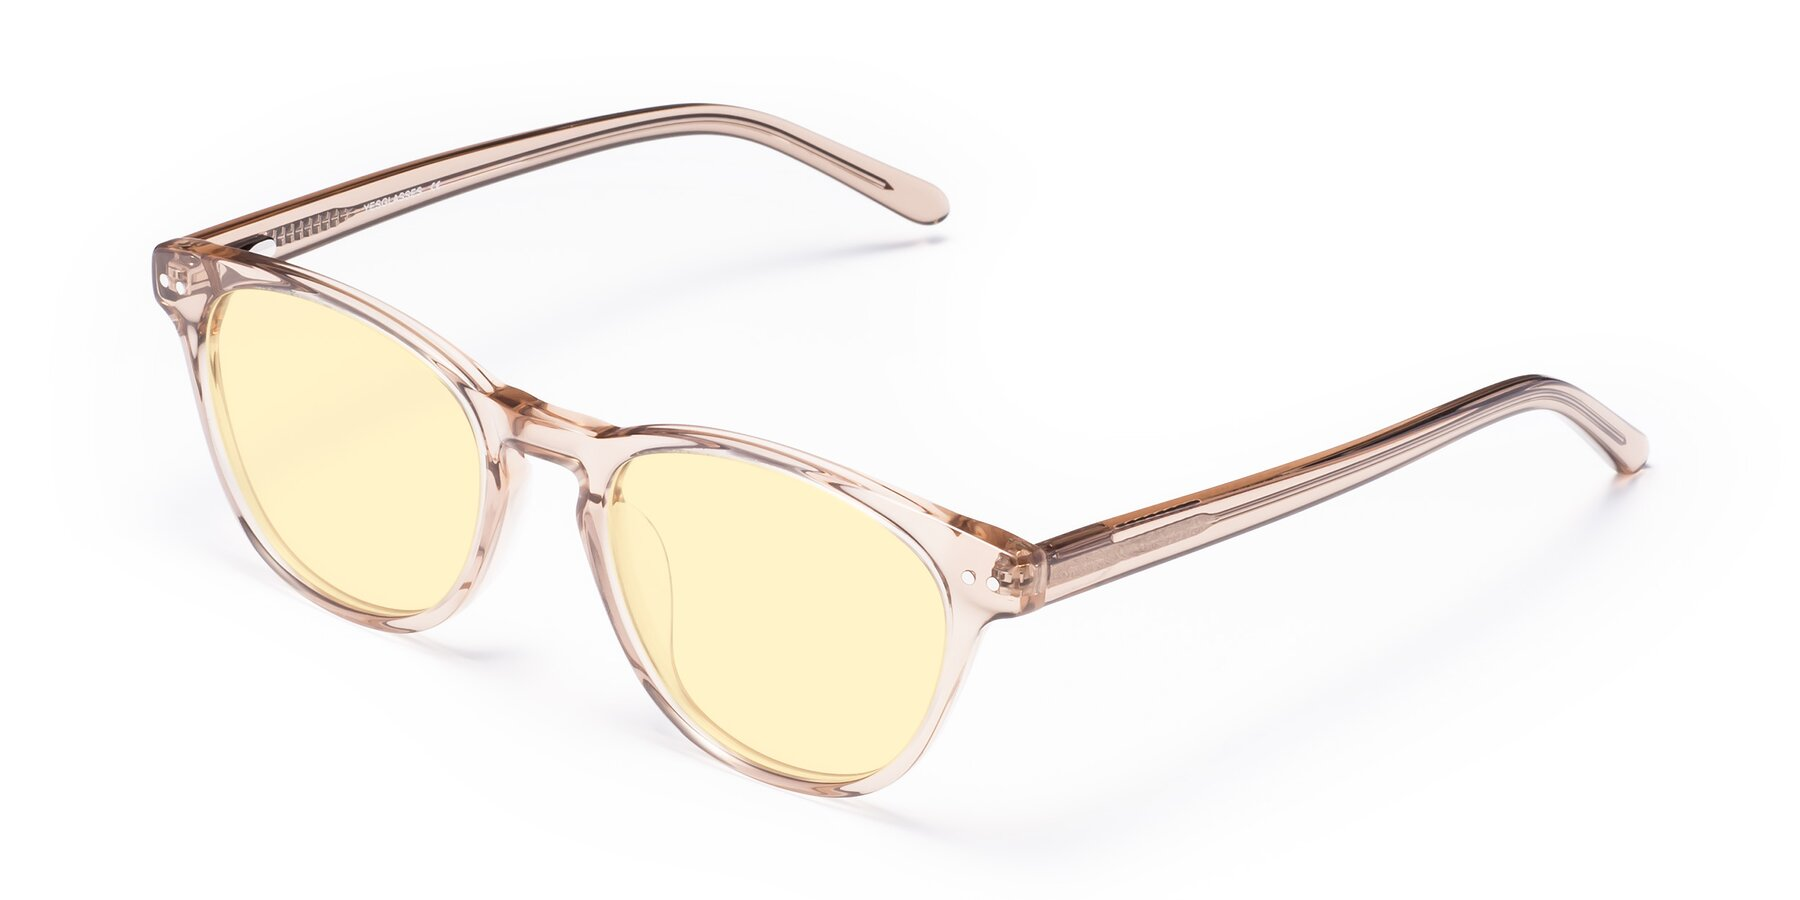 Angle of Blaze in light Brown with Light Yellow Tinted Lenses